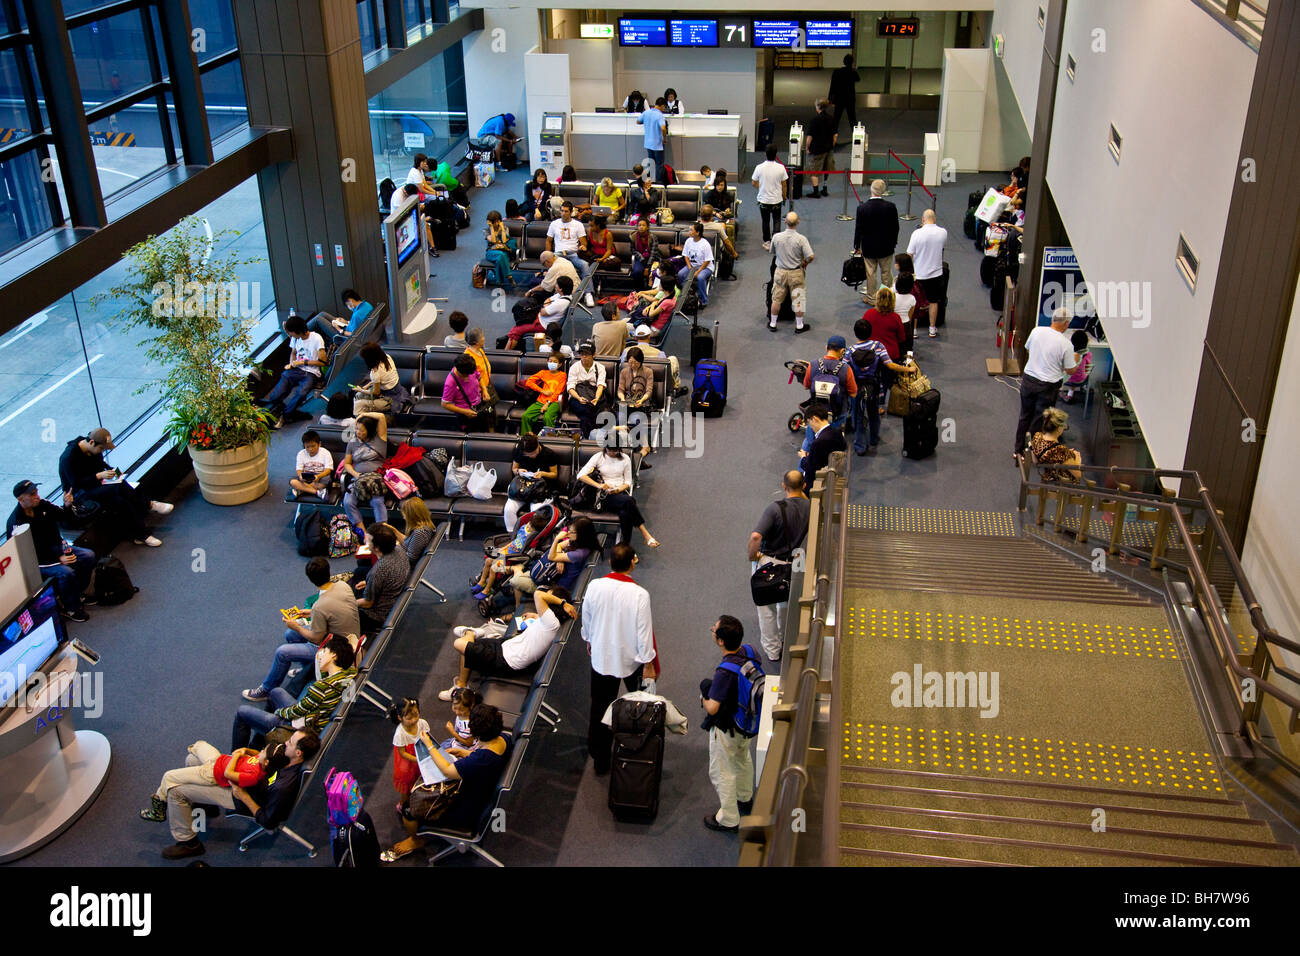 Boarding gate at NRT Narita Airport in Japan - Stock Image